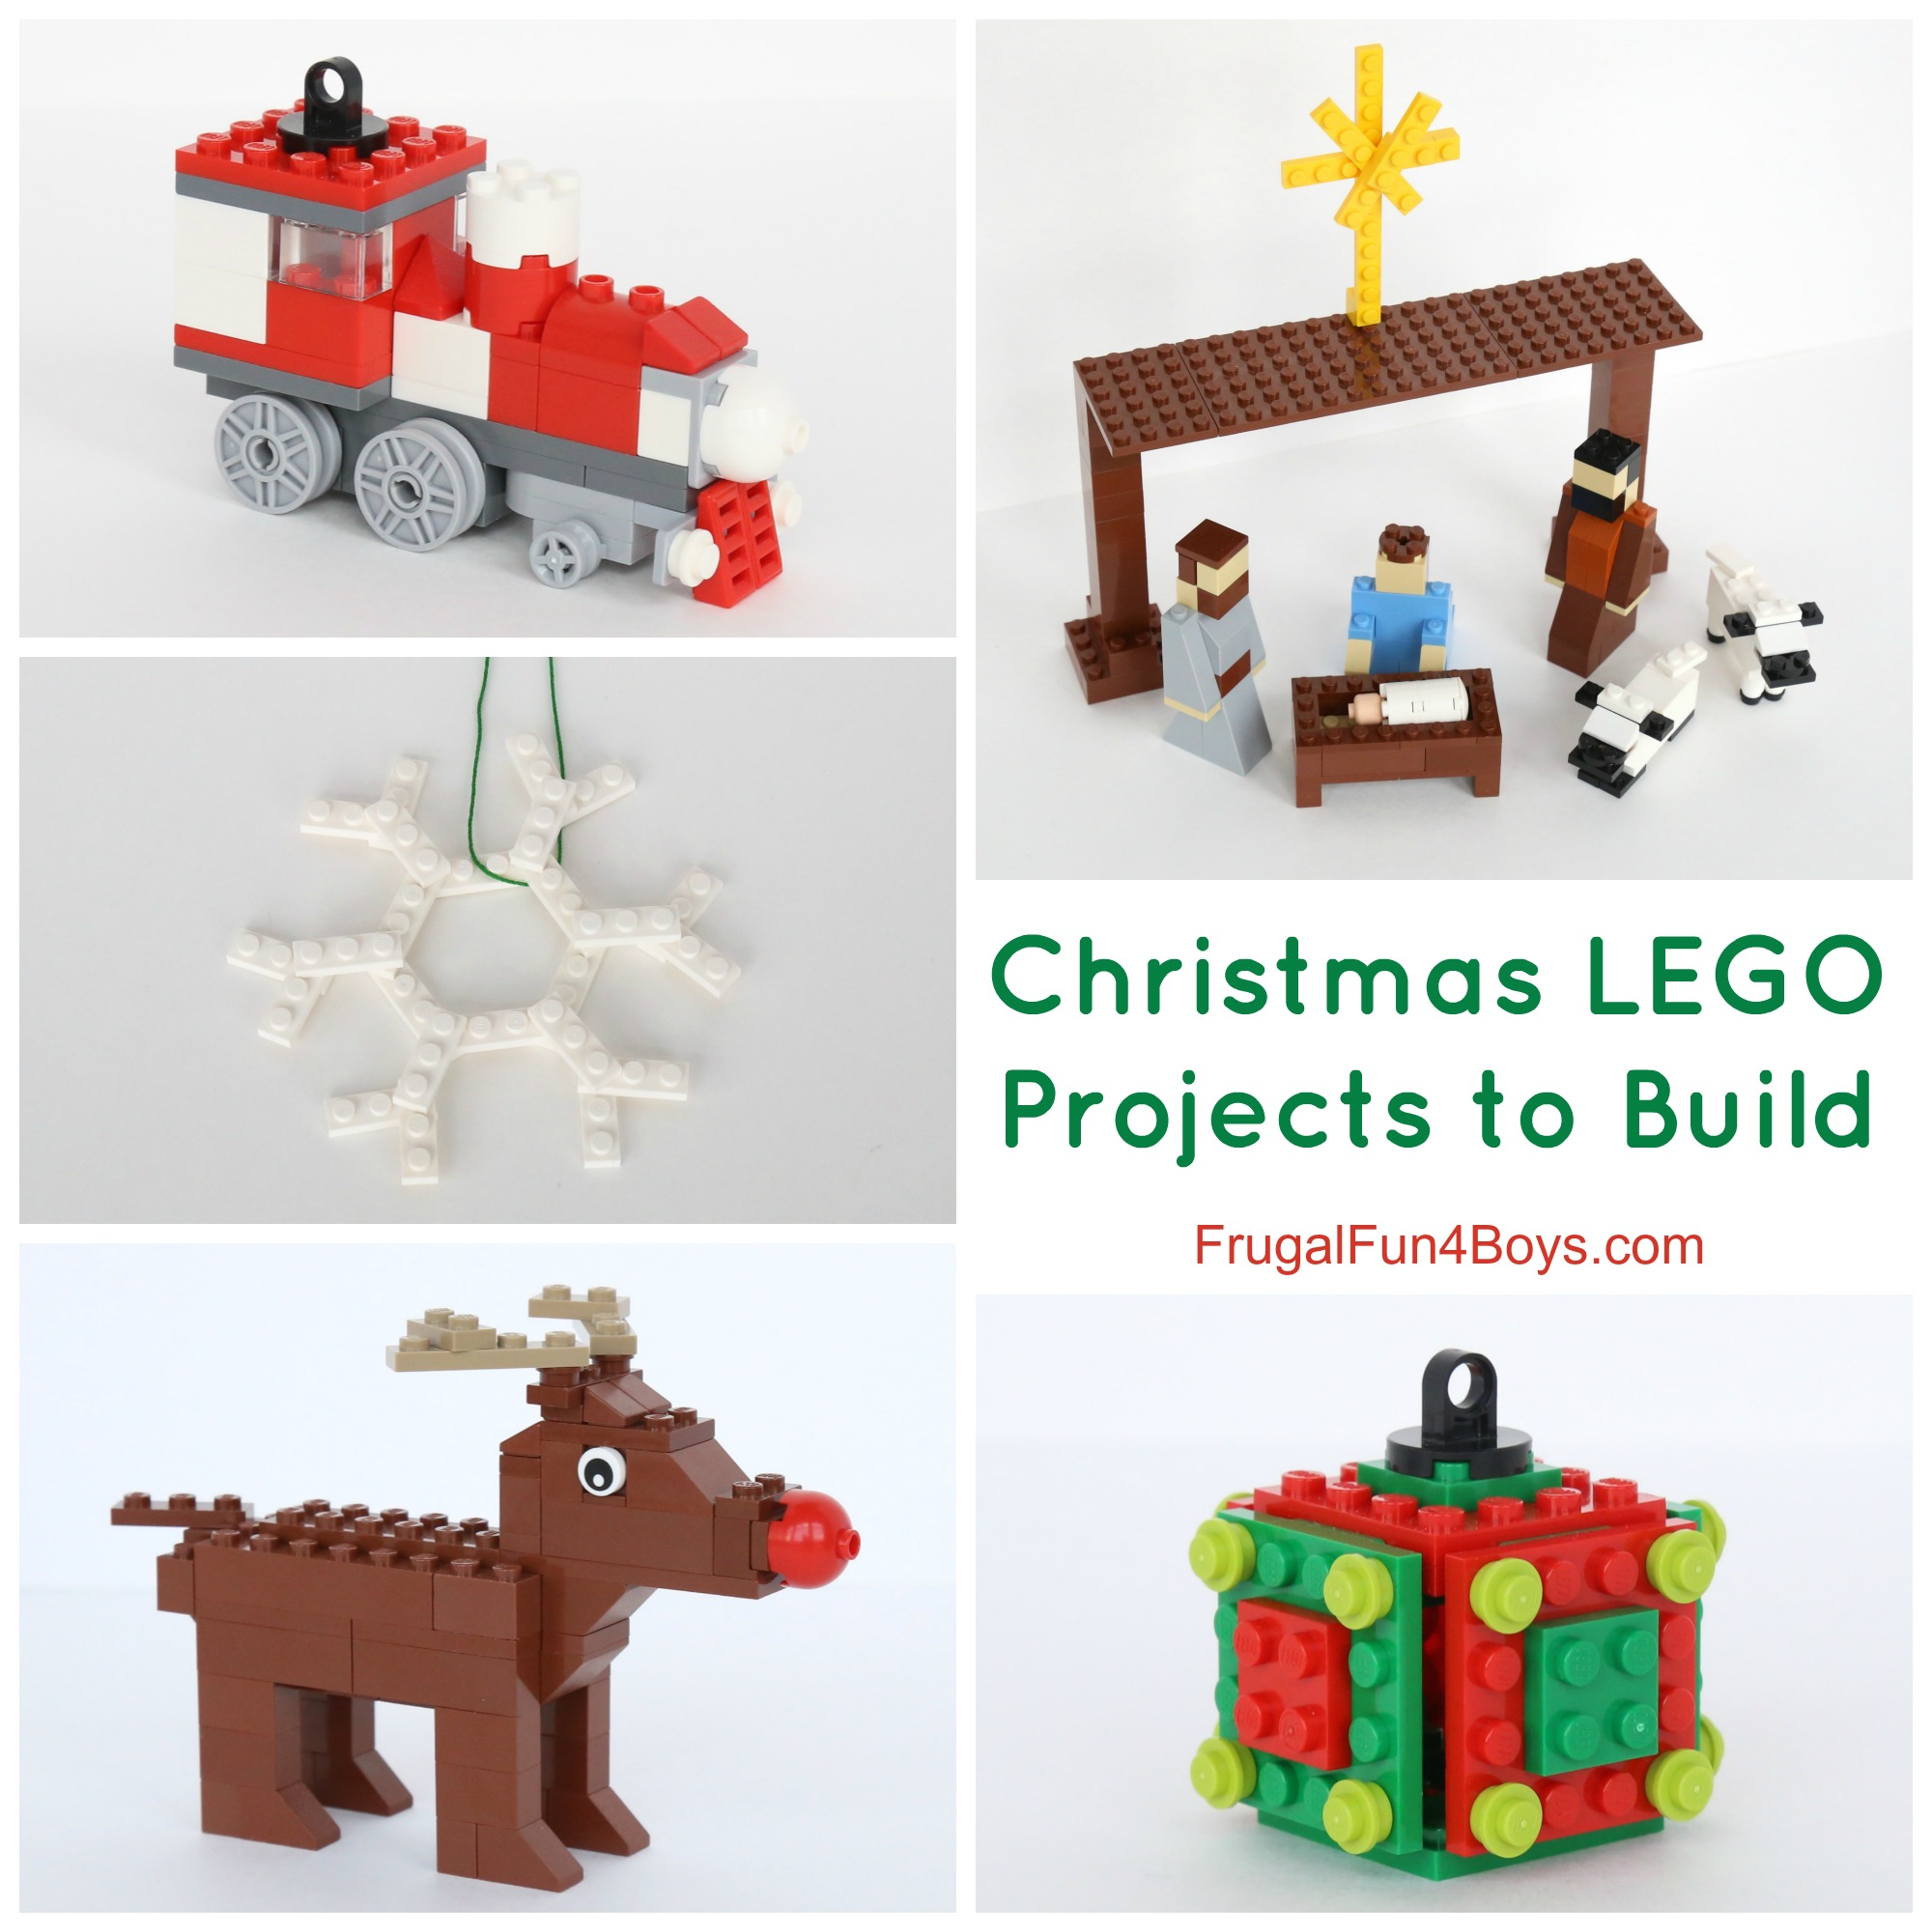 Awesome Ideas for a Fun Holiday Break!